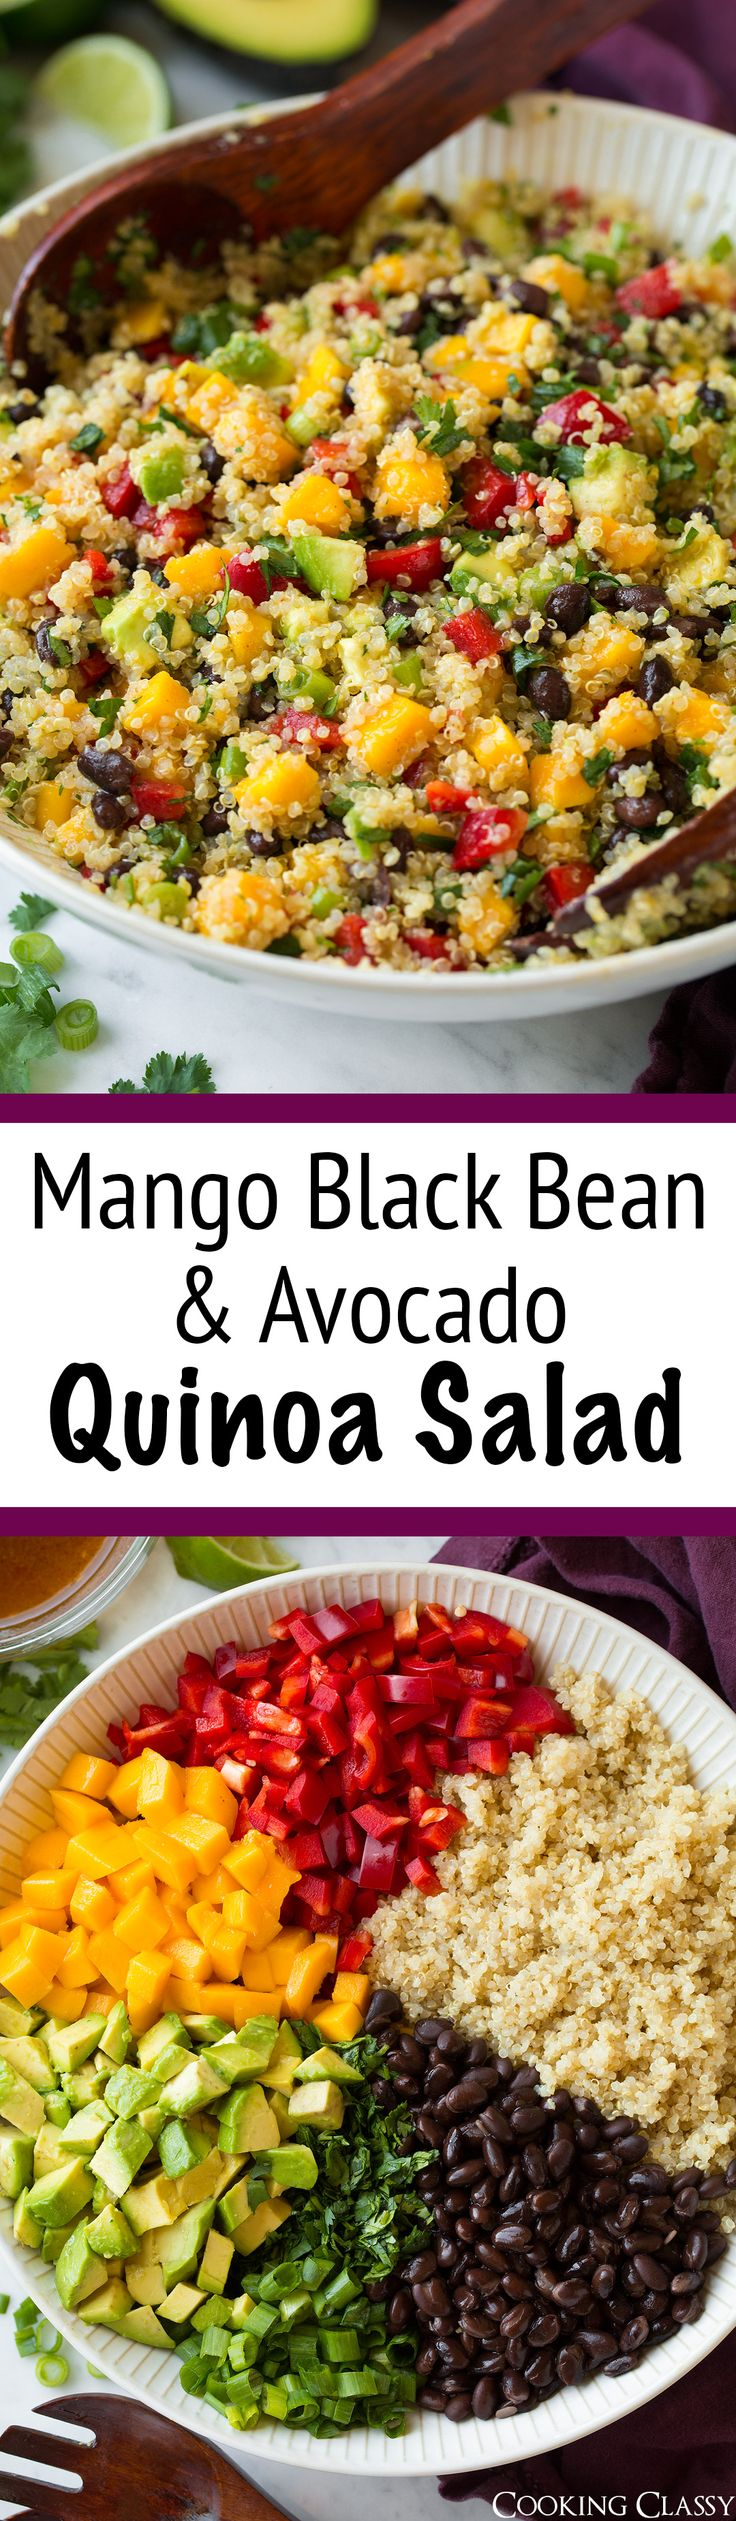 Mango Black Bean and Avocado Quinoa Salad - This is sooo good! Perfect side to grilled chicken or fish.